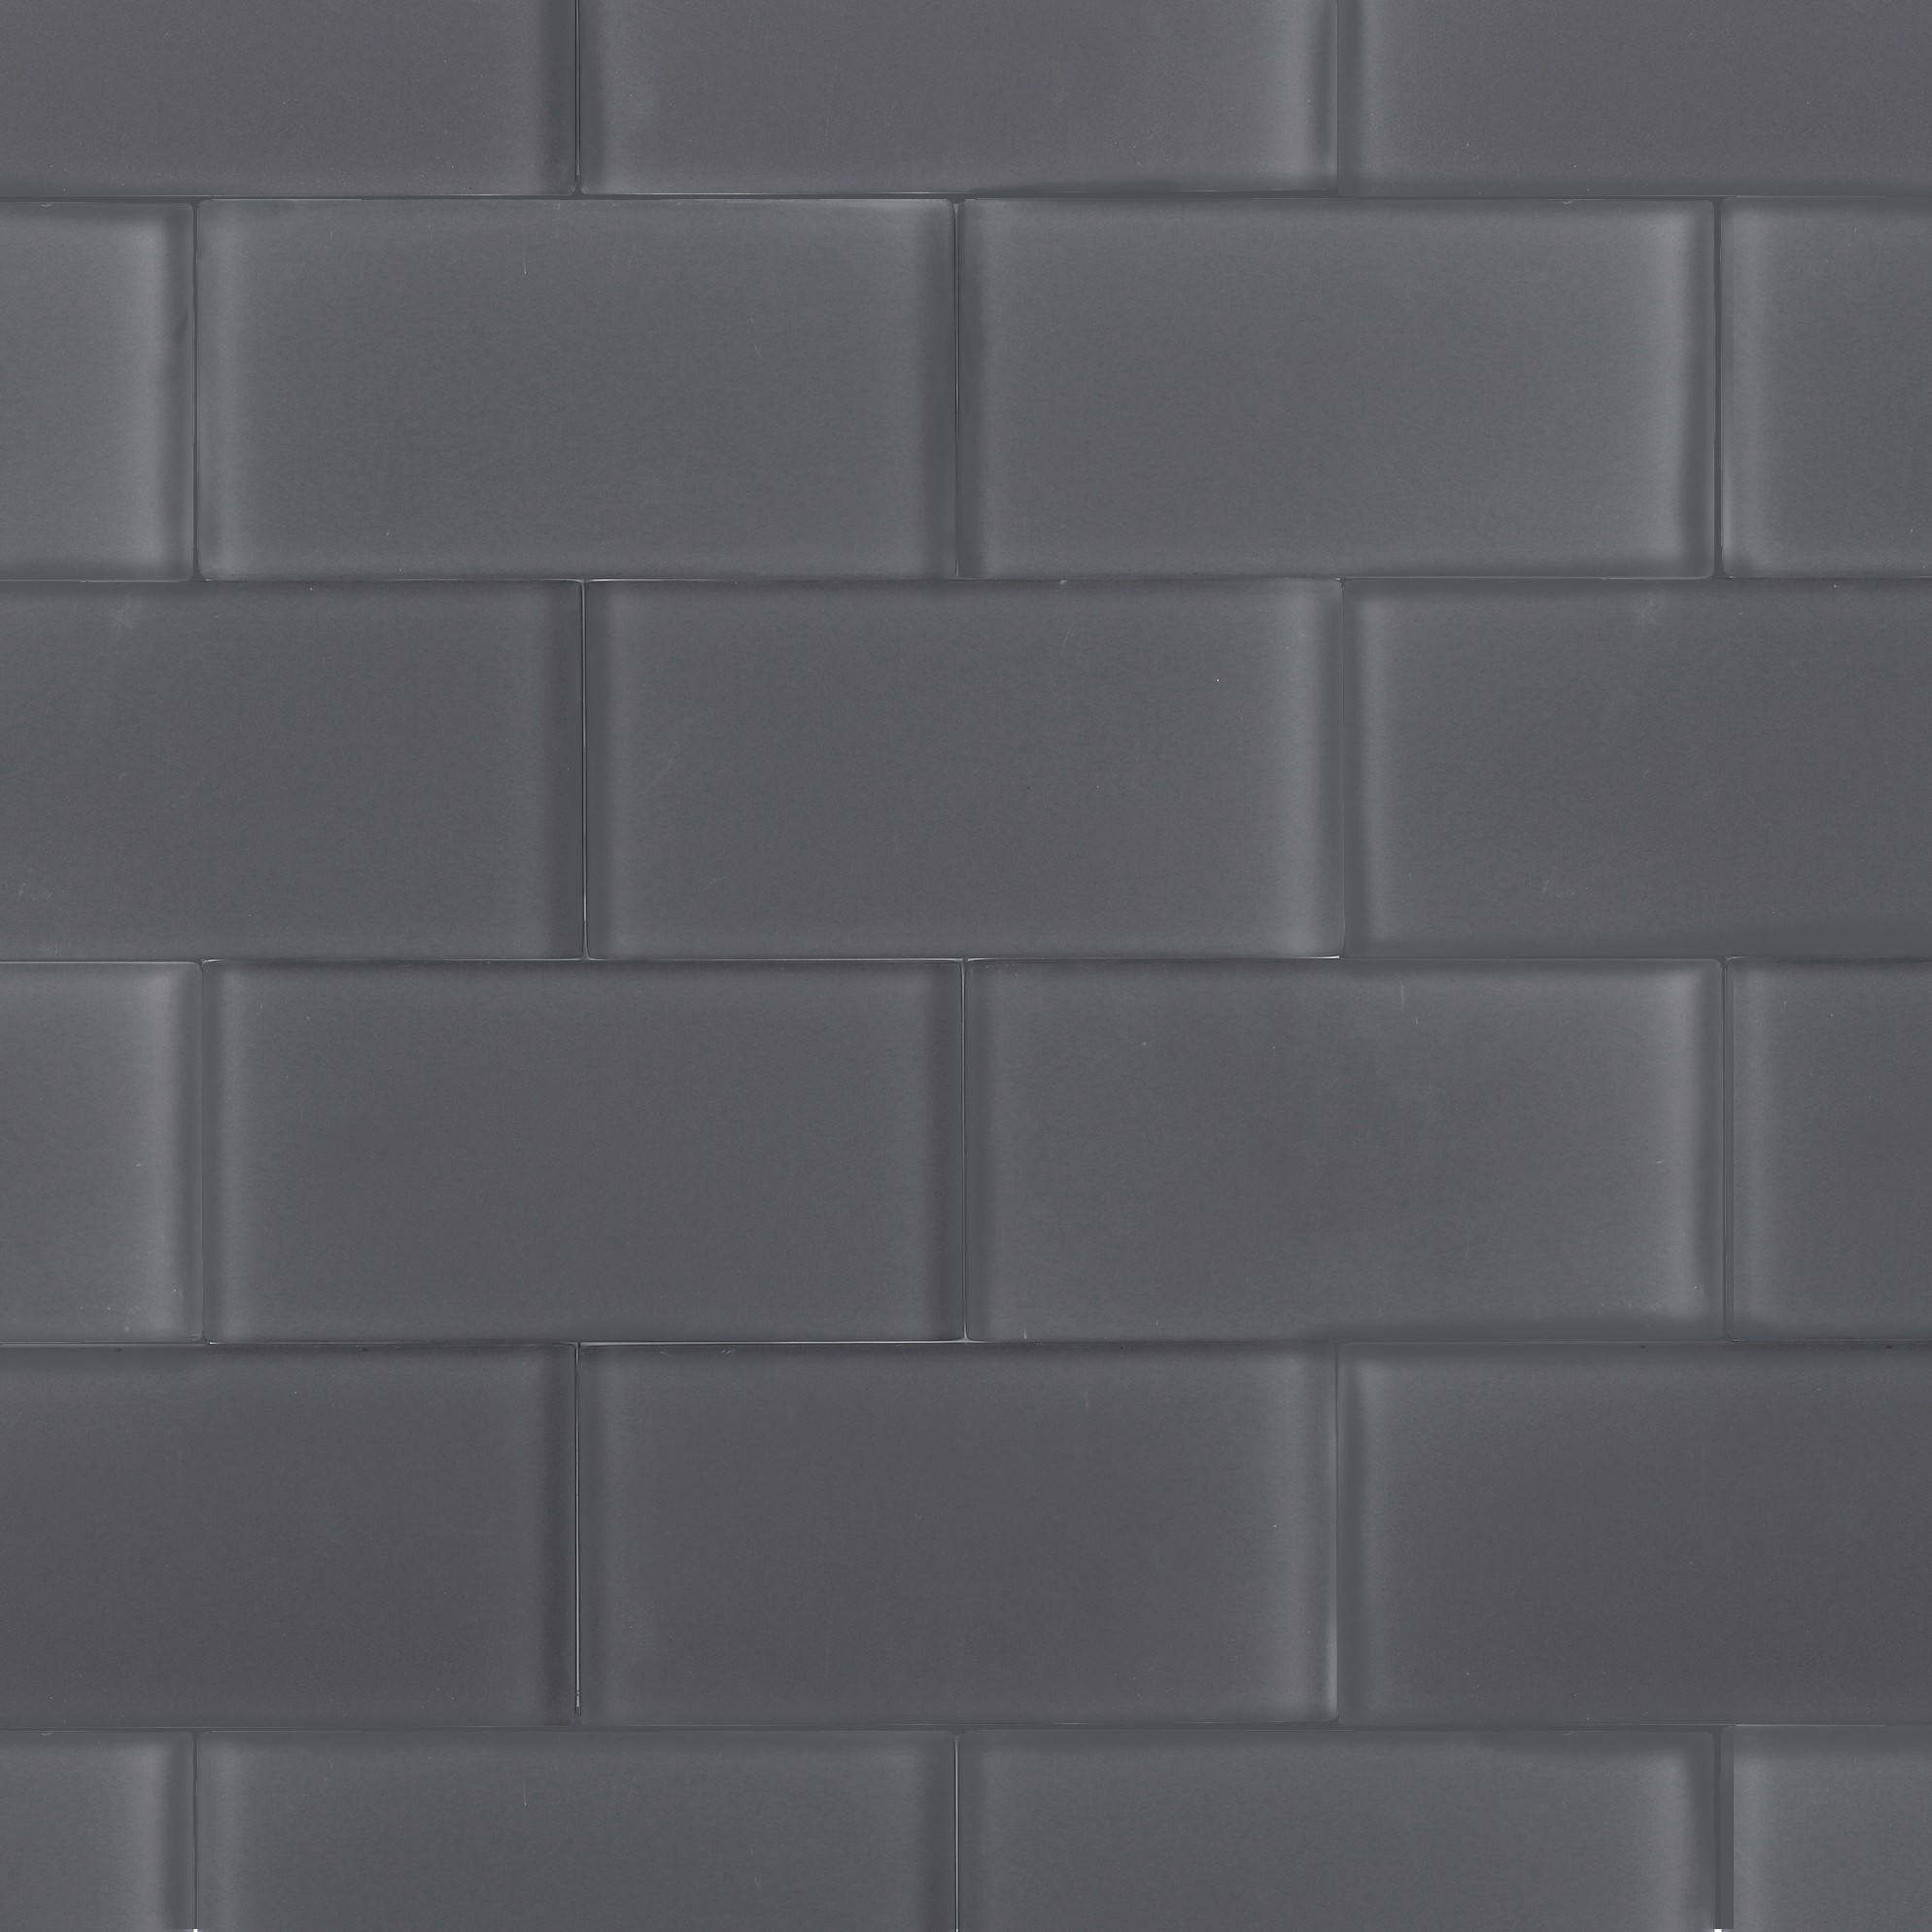 Shop For Loft Ash Gray Frosted 3x6 Glass Tile At Tilebar Com